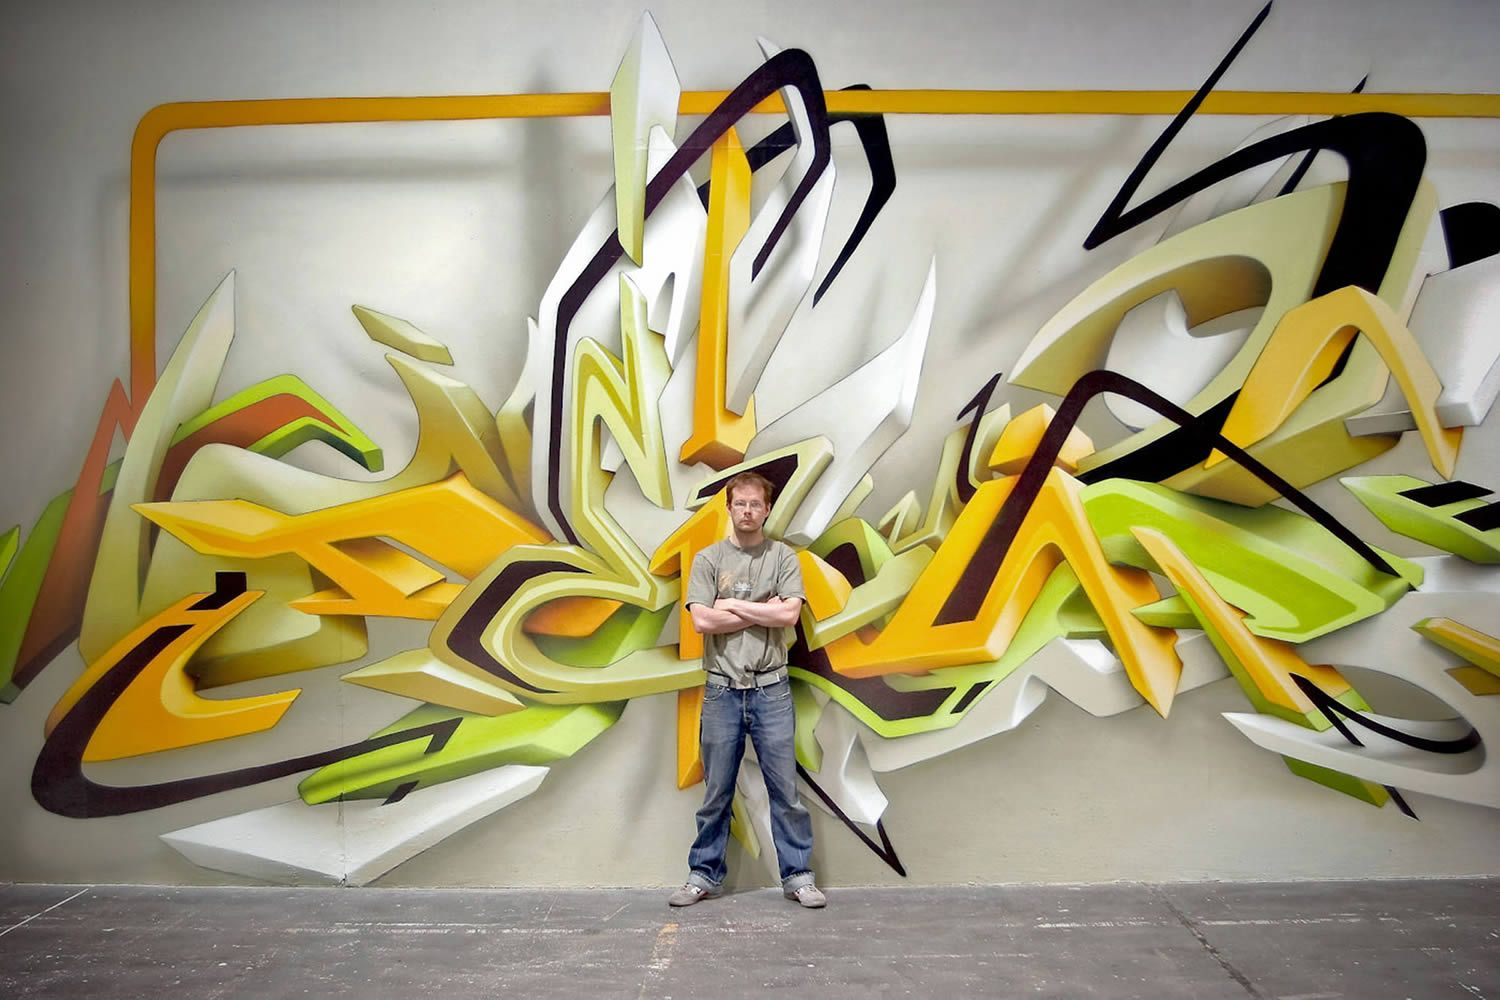 Street art daim a german graffiti artist with over 25 years of experience and known for his 3d style